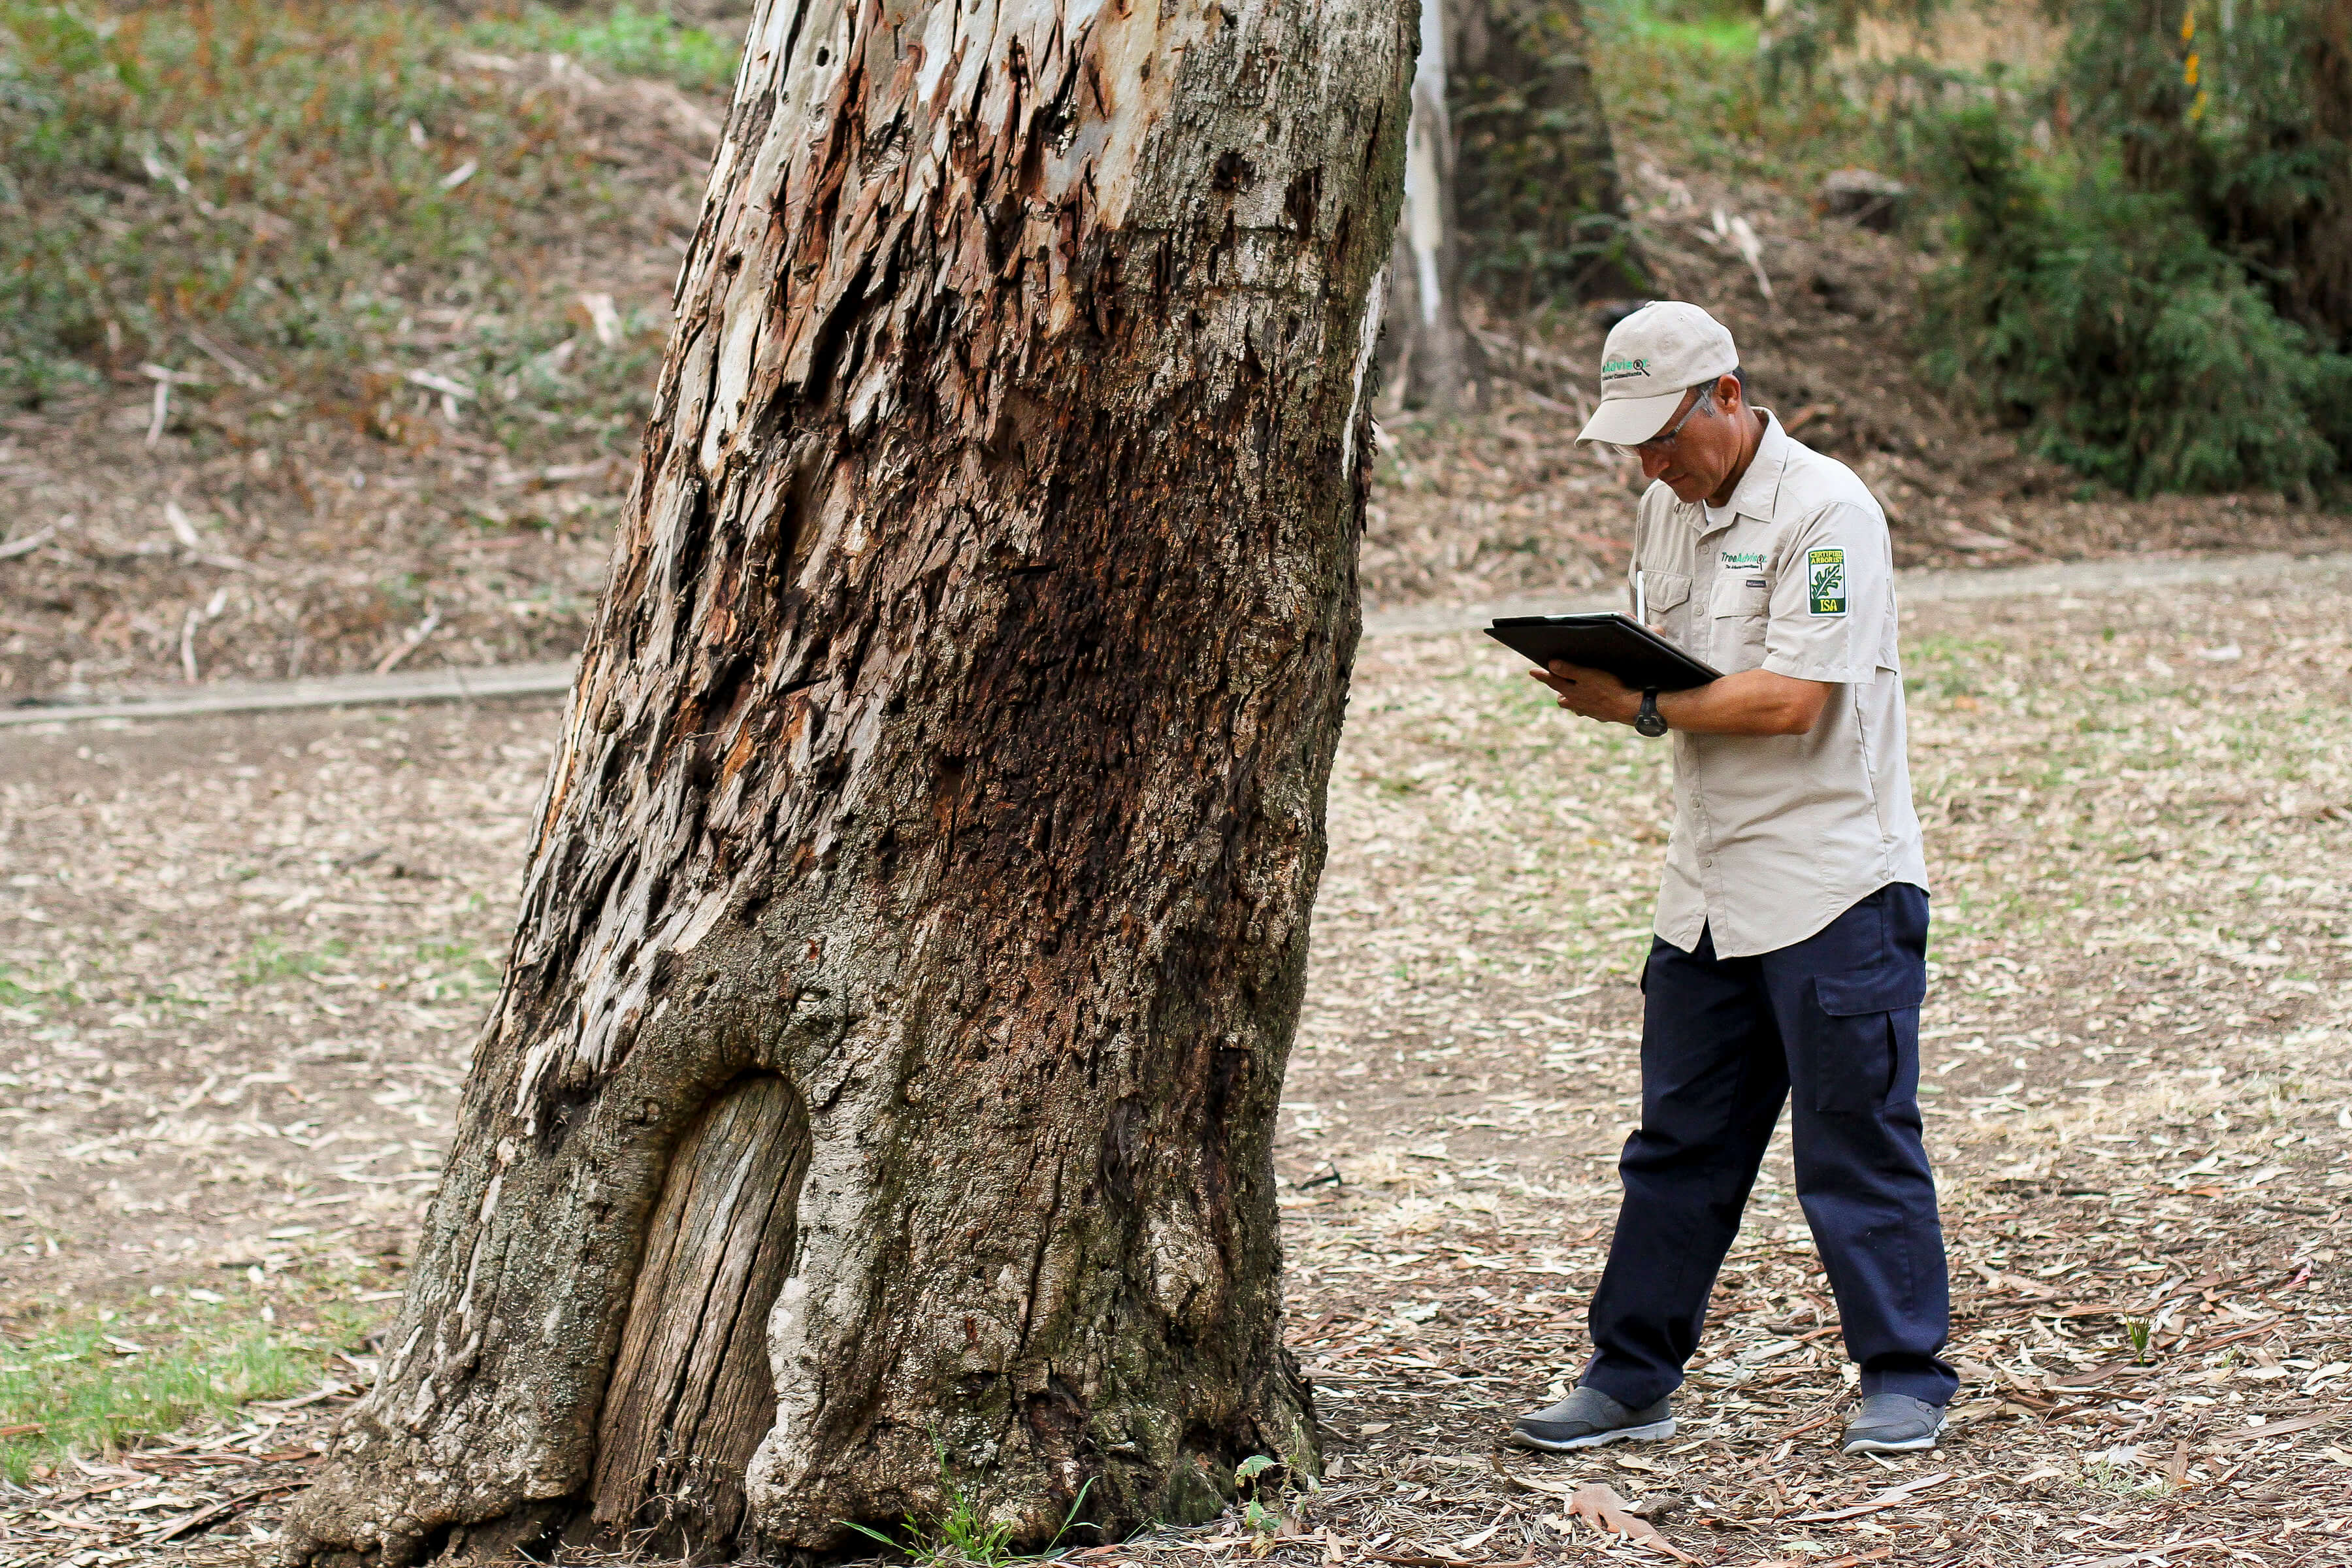 Tree Doctors Offers Arborist Reports and All Types of Arborist Services